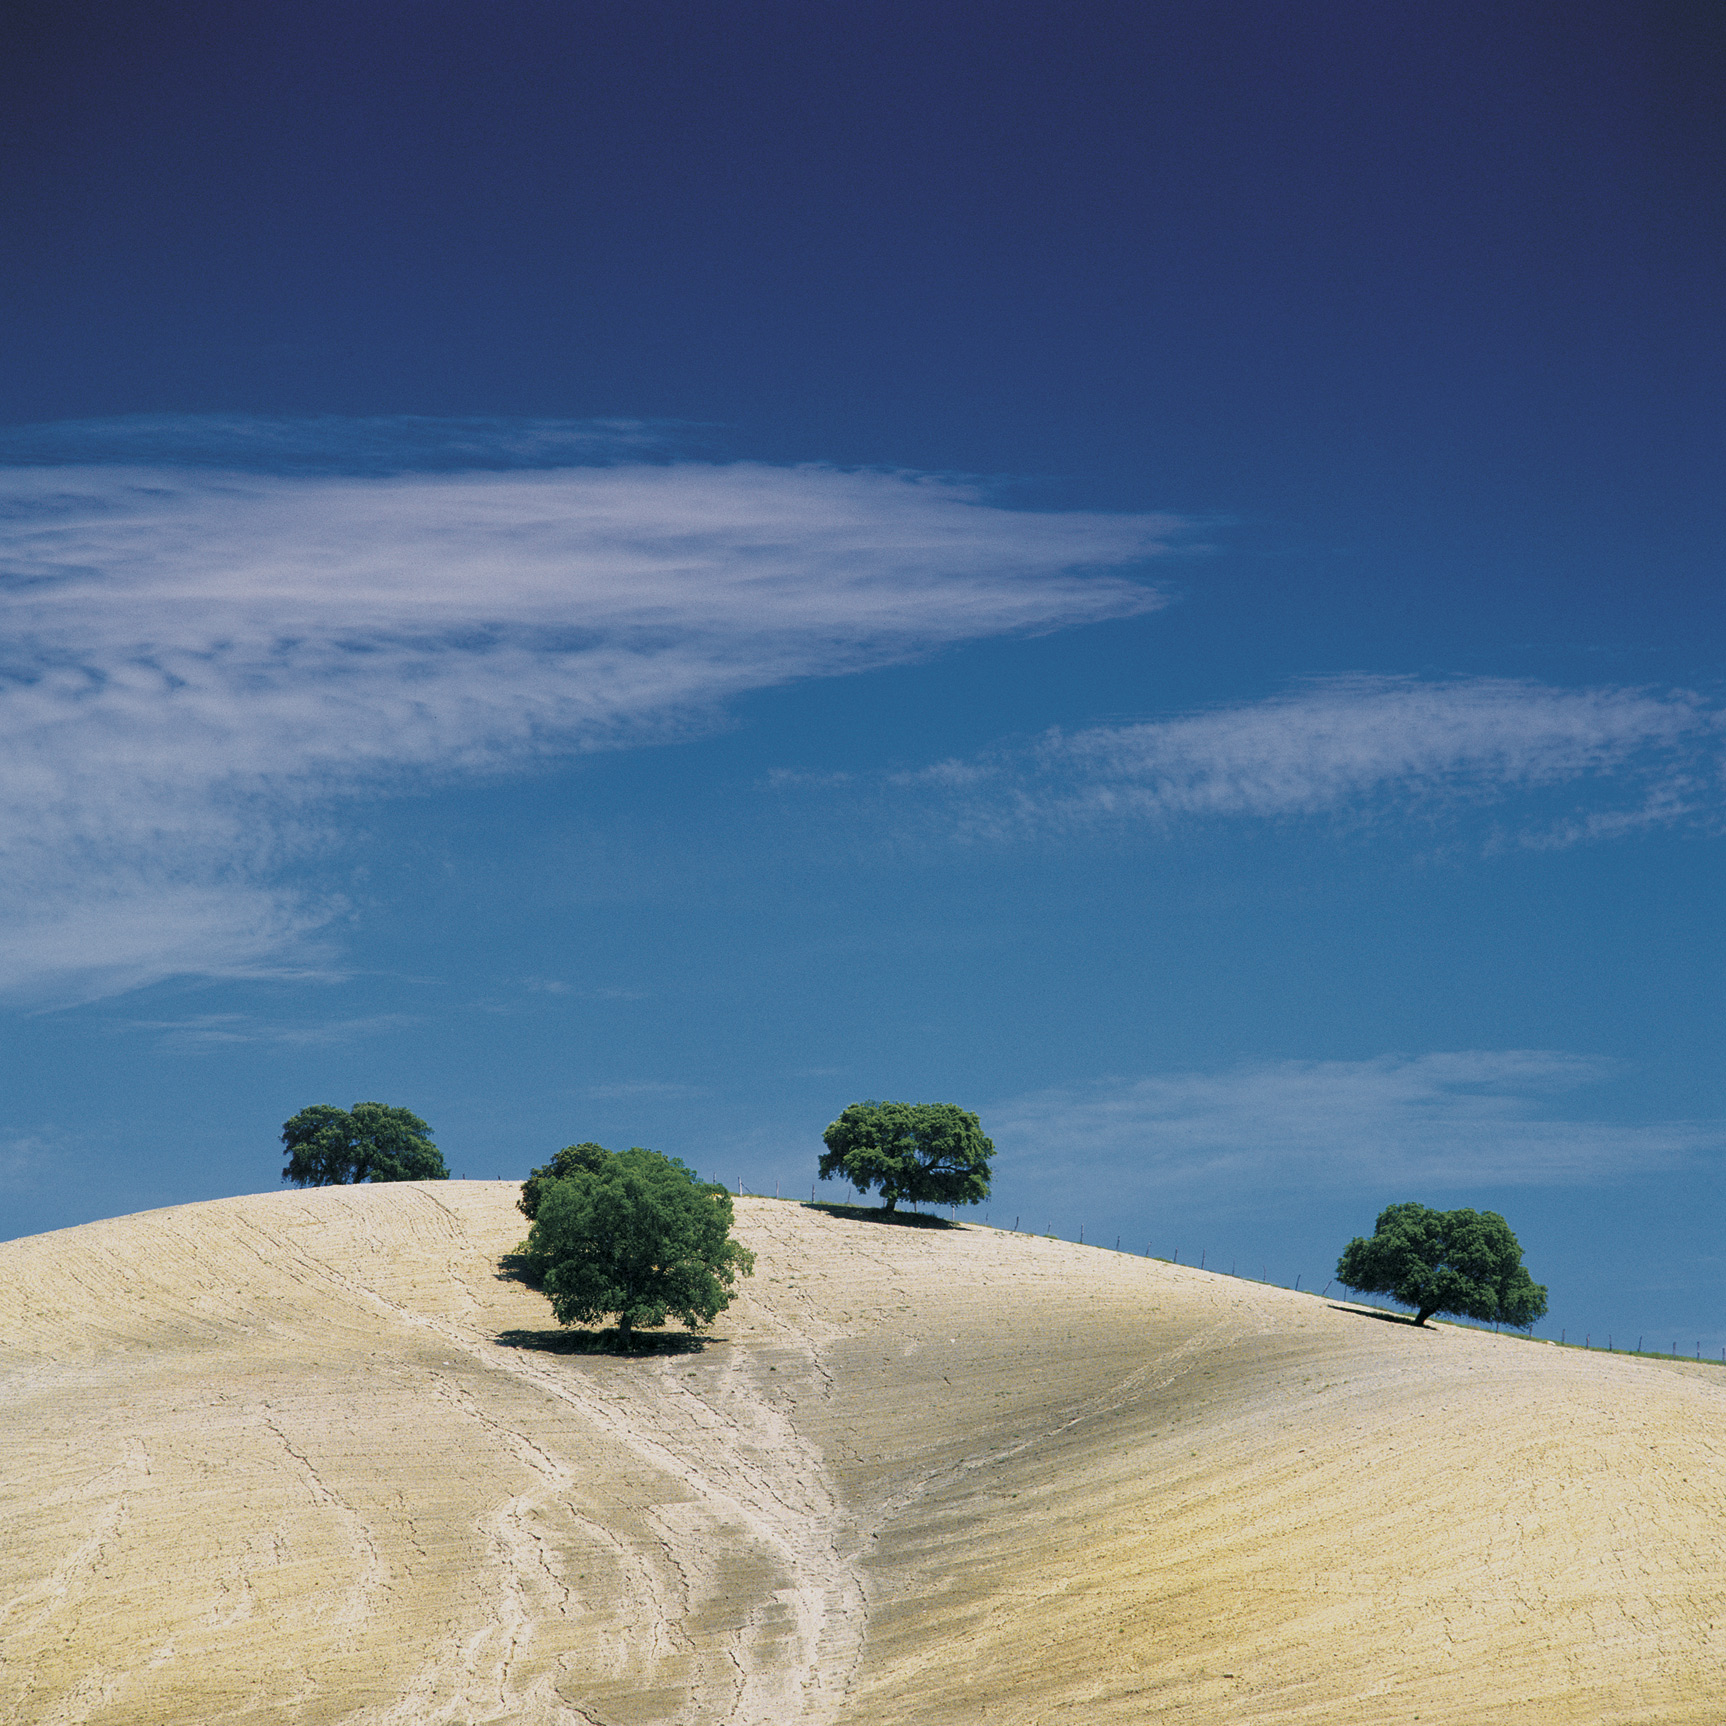 Bobble trees, Andalucia, Spain (045007)